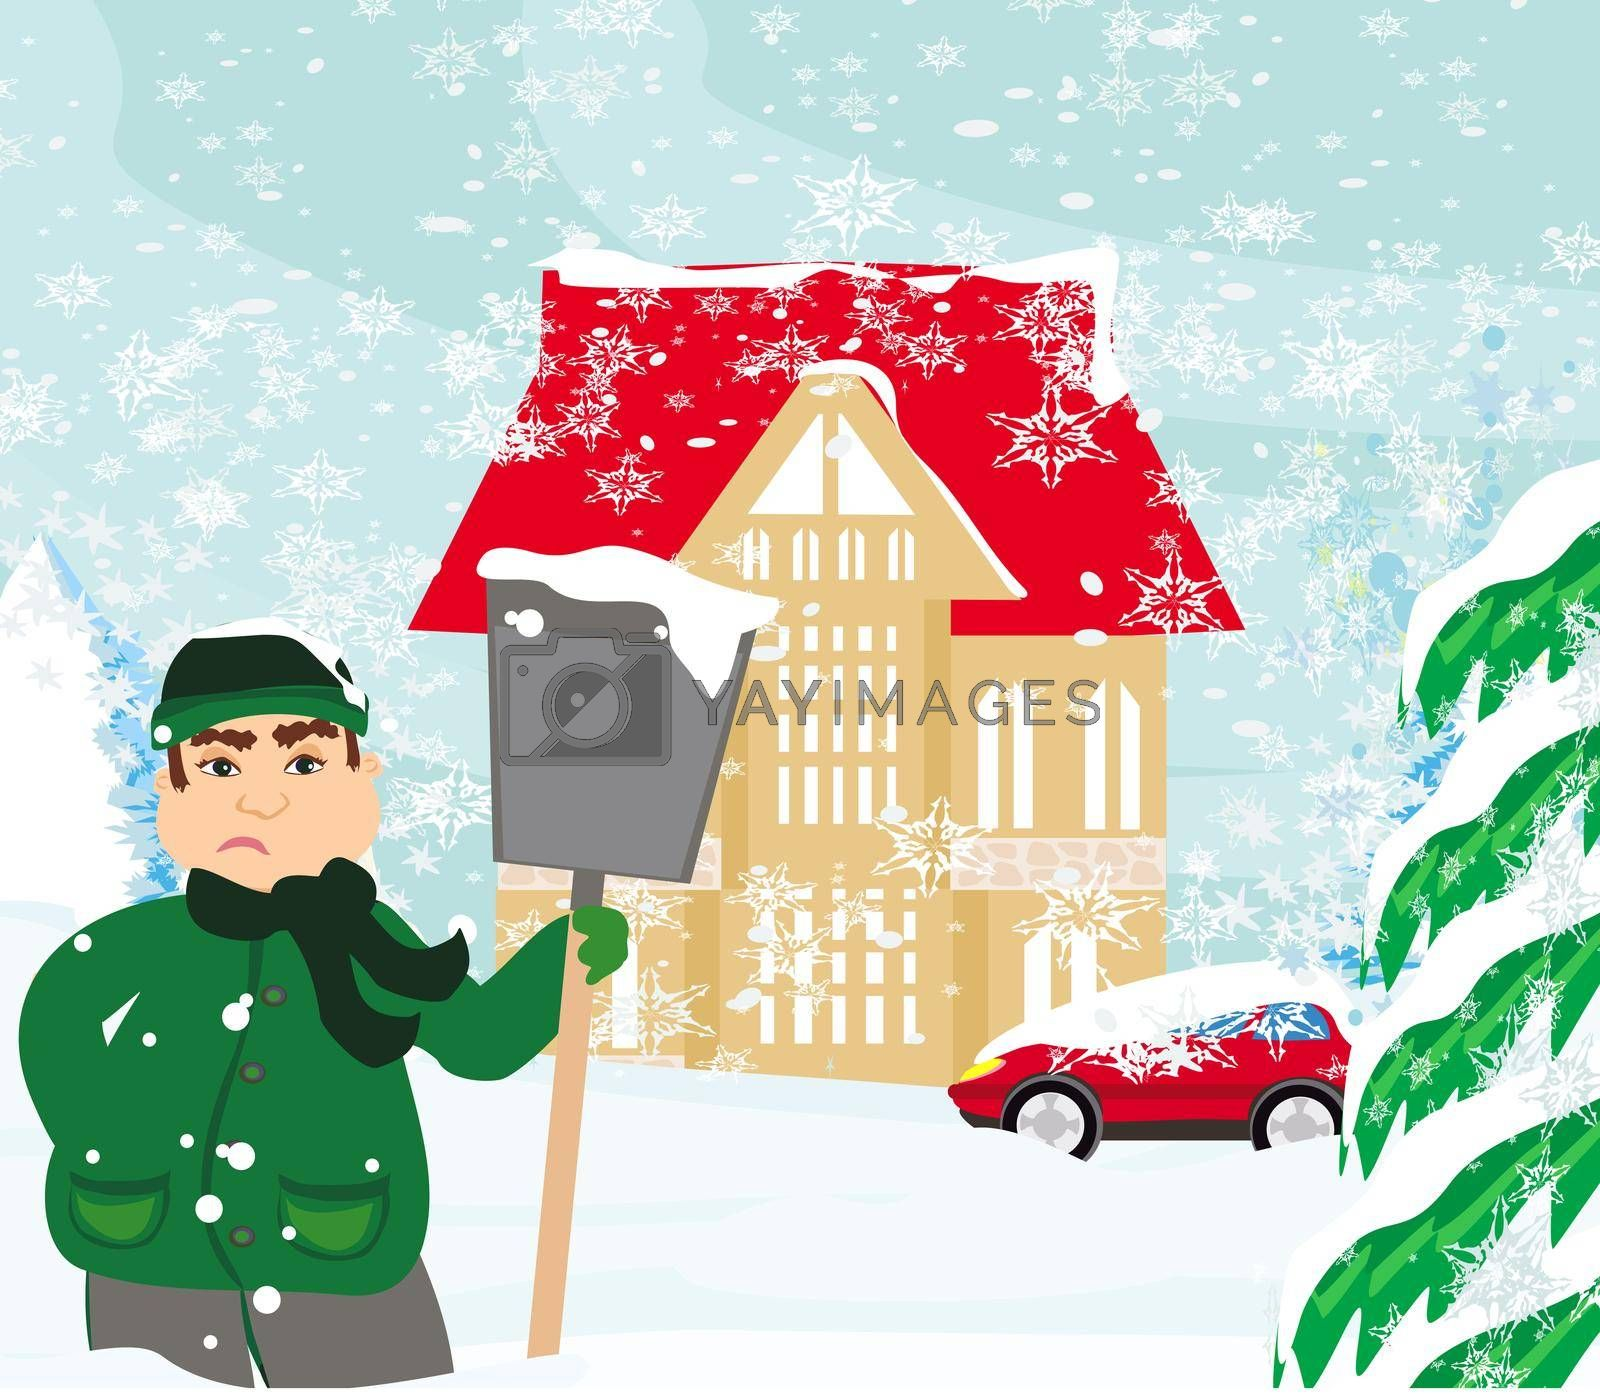 Royalty free image of sad man is shoveling snow in front of his house by JackyBrown